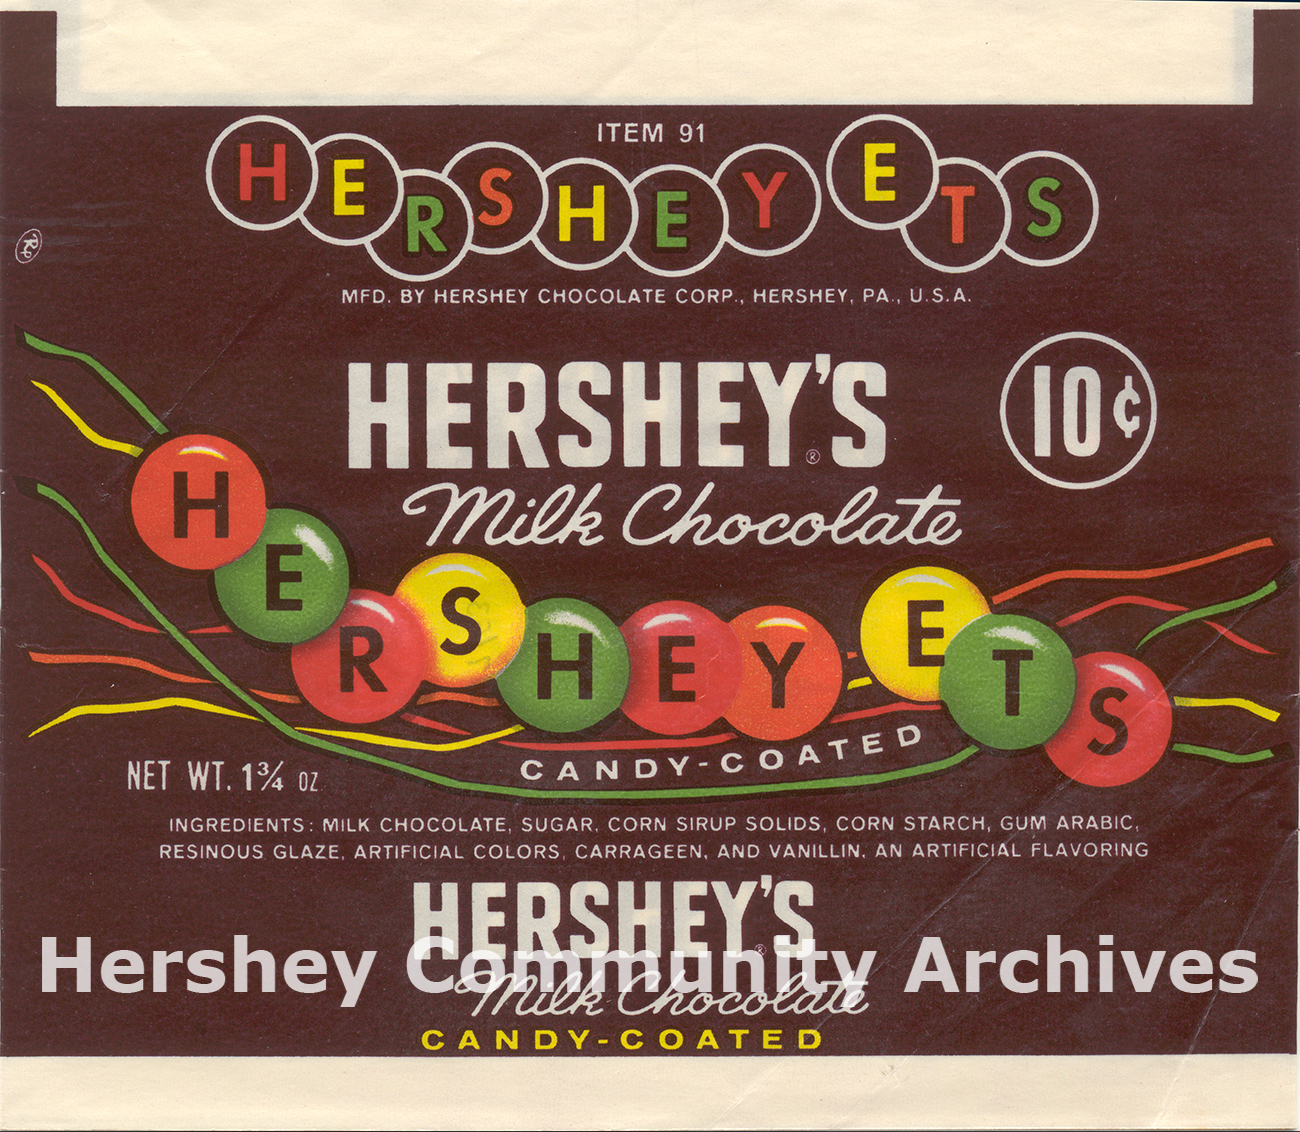 """Hershey-Ets' shape changed to circular """"lentils"""" in 1960."""